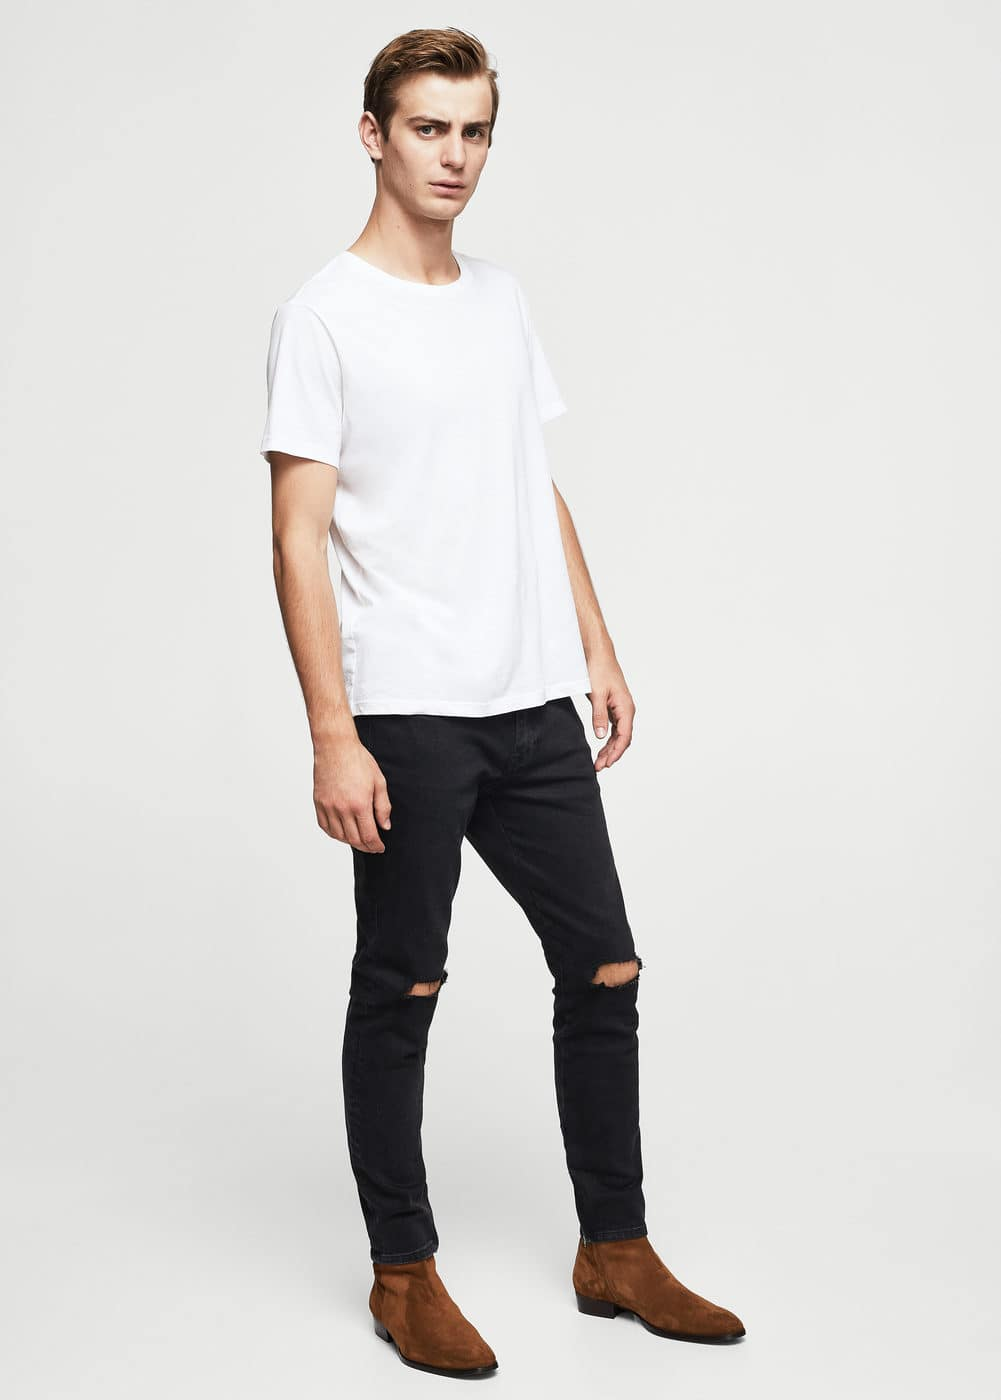 Jeans jaden slim-fit negros rotos | MANGO MAN